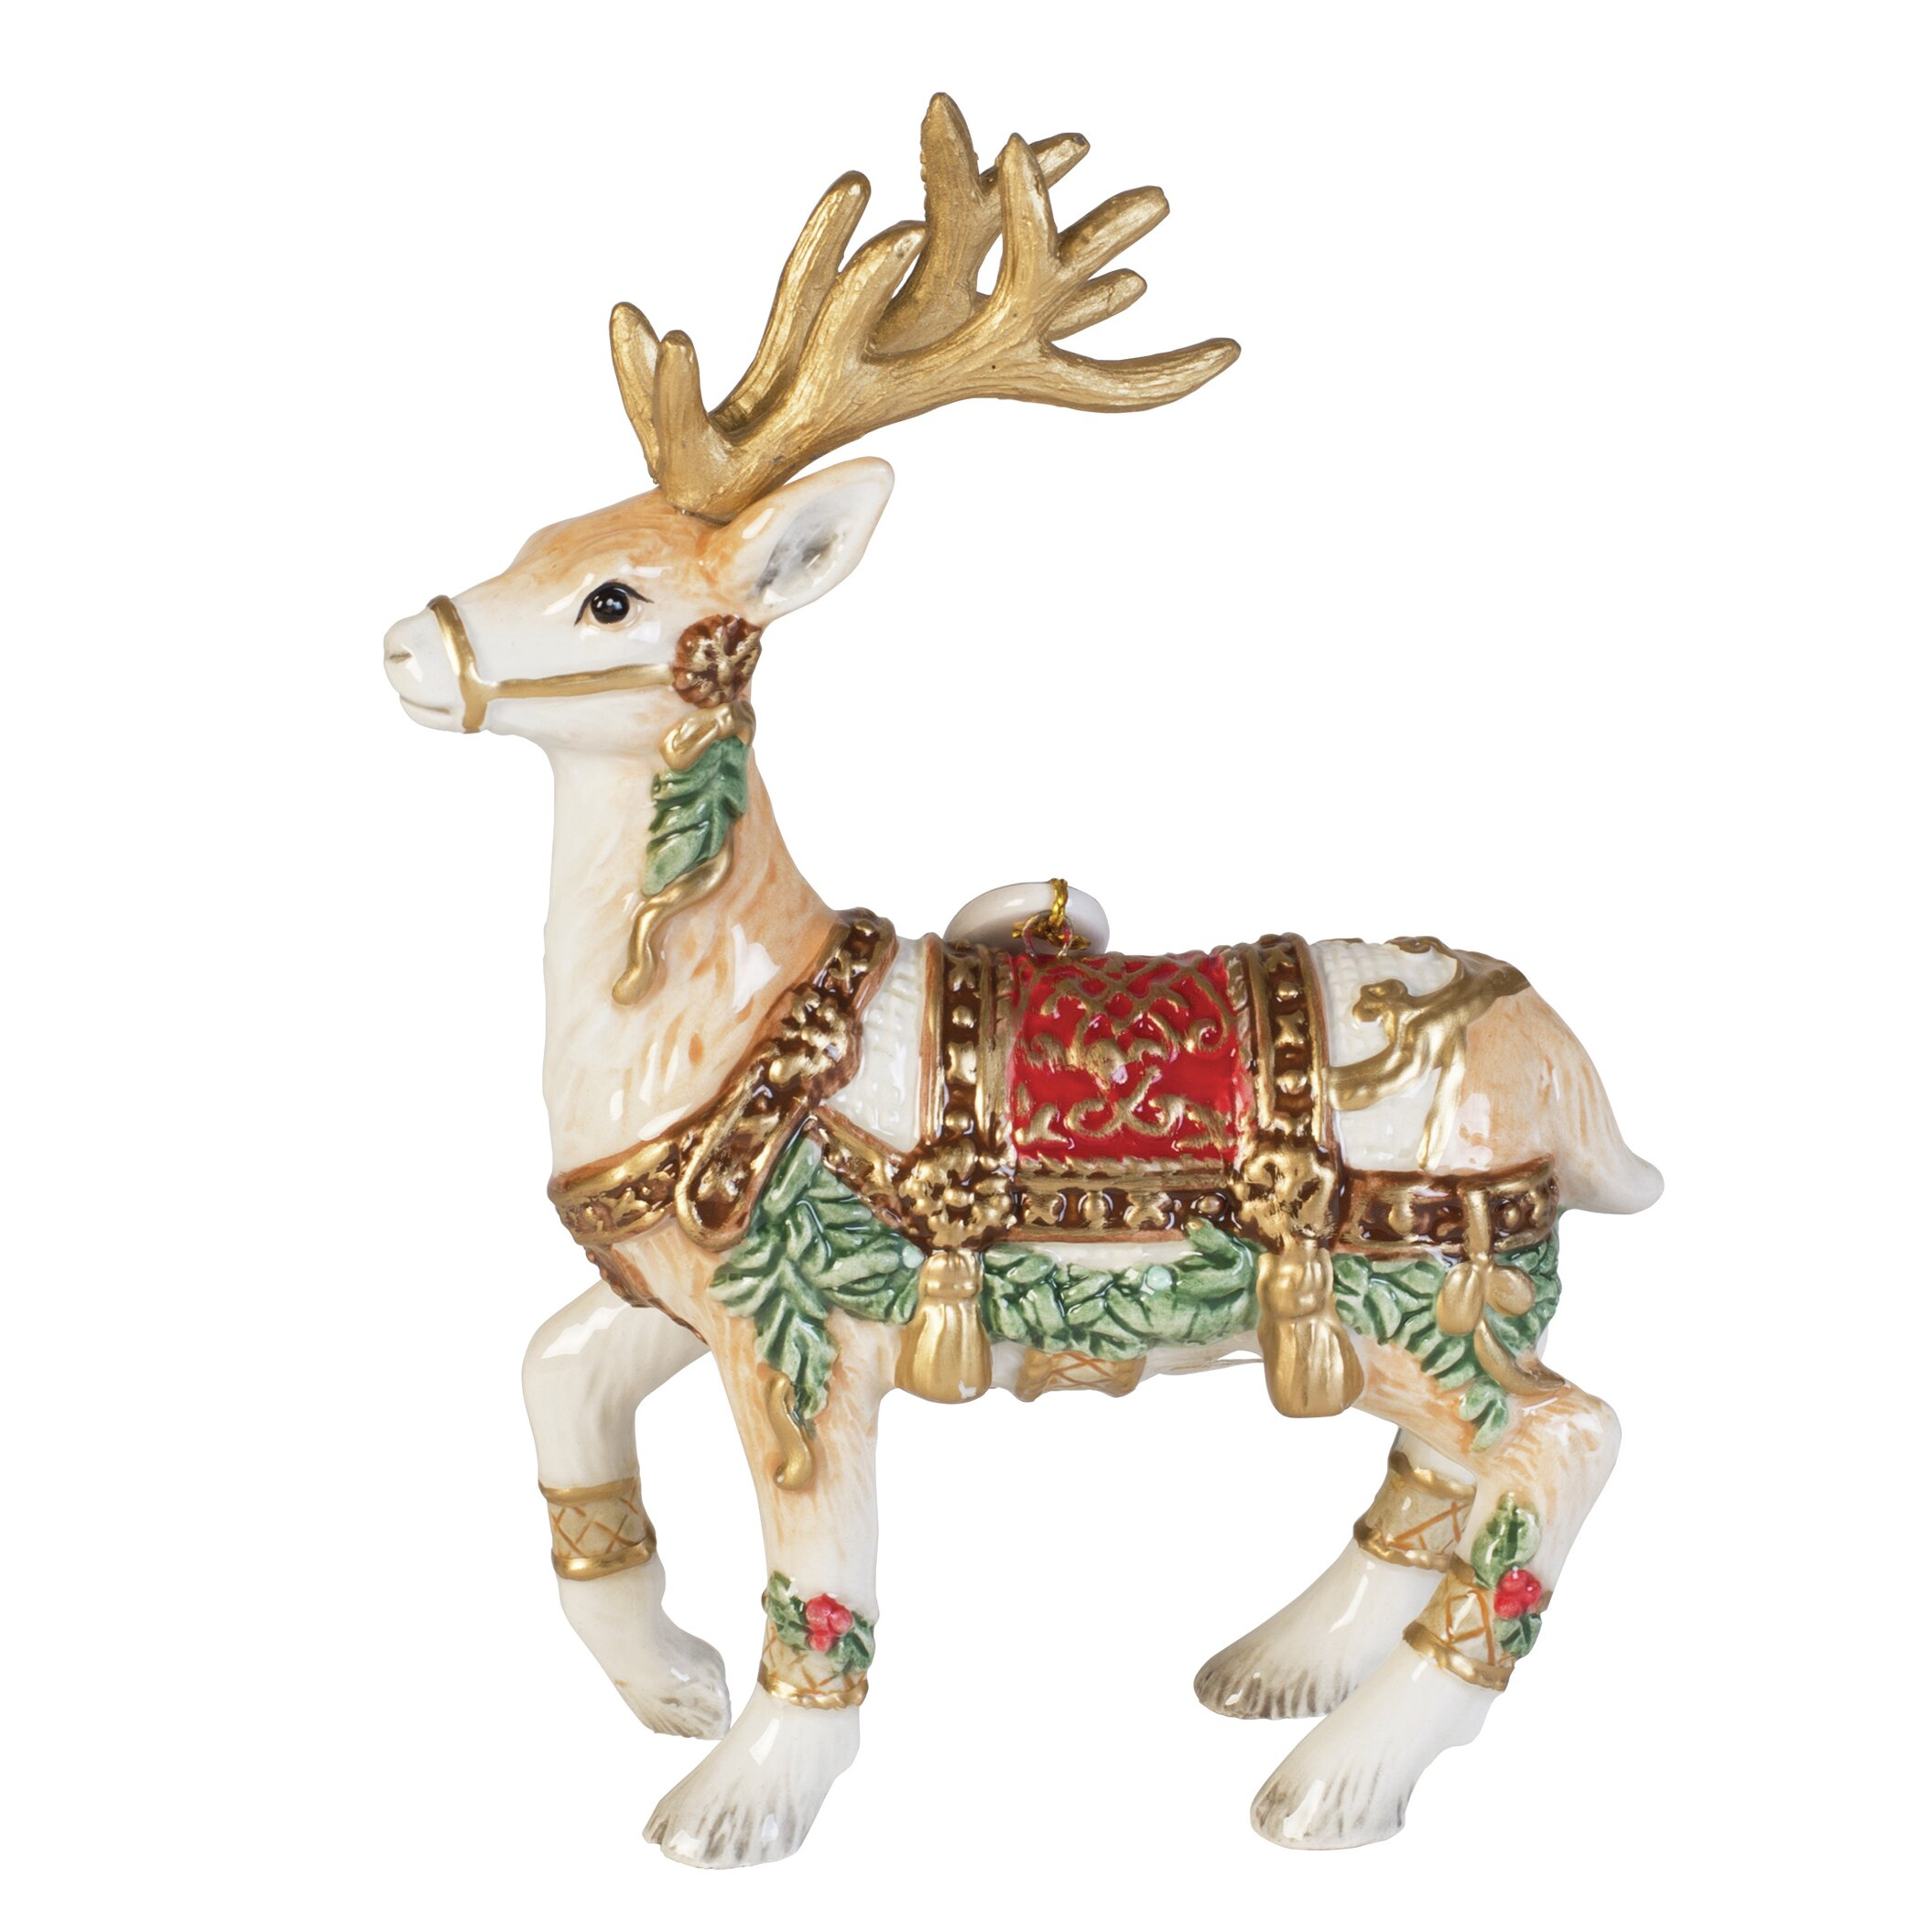 Fitz and Floyd Yuletide Holiday 2016 Dated Figurine  : Fitz and Floyd Yuletide Holiday 2016 Dated Figurine from www.wayfair.com size 2110 x 2110 jpeg 444kB